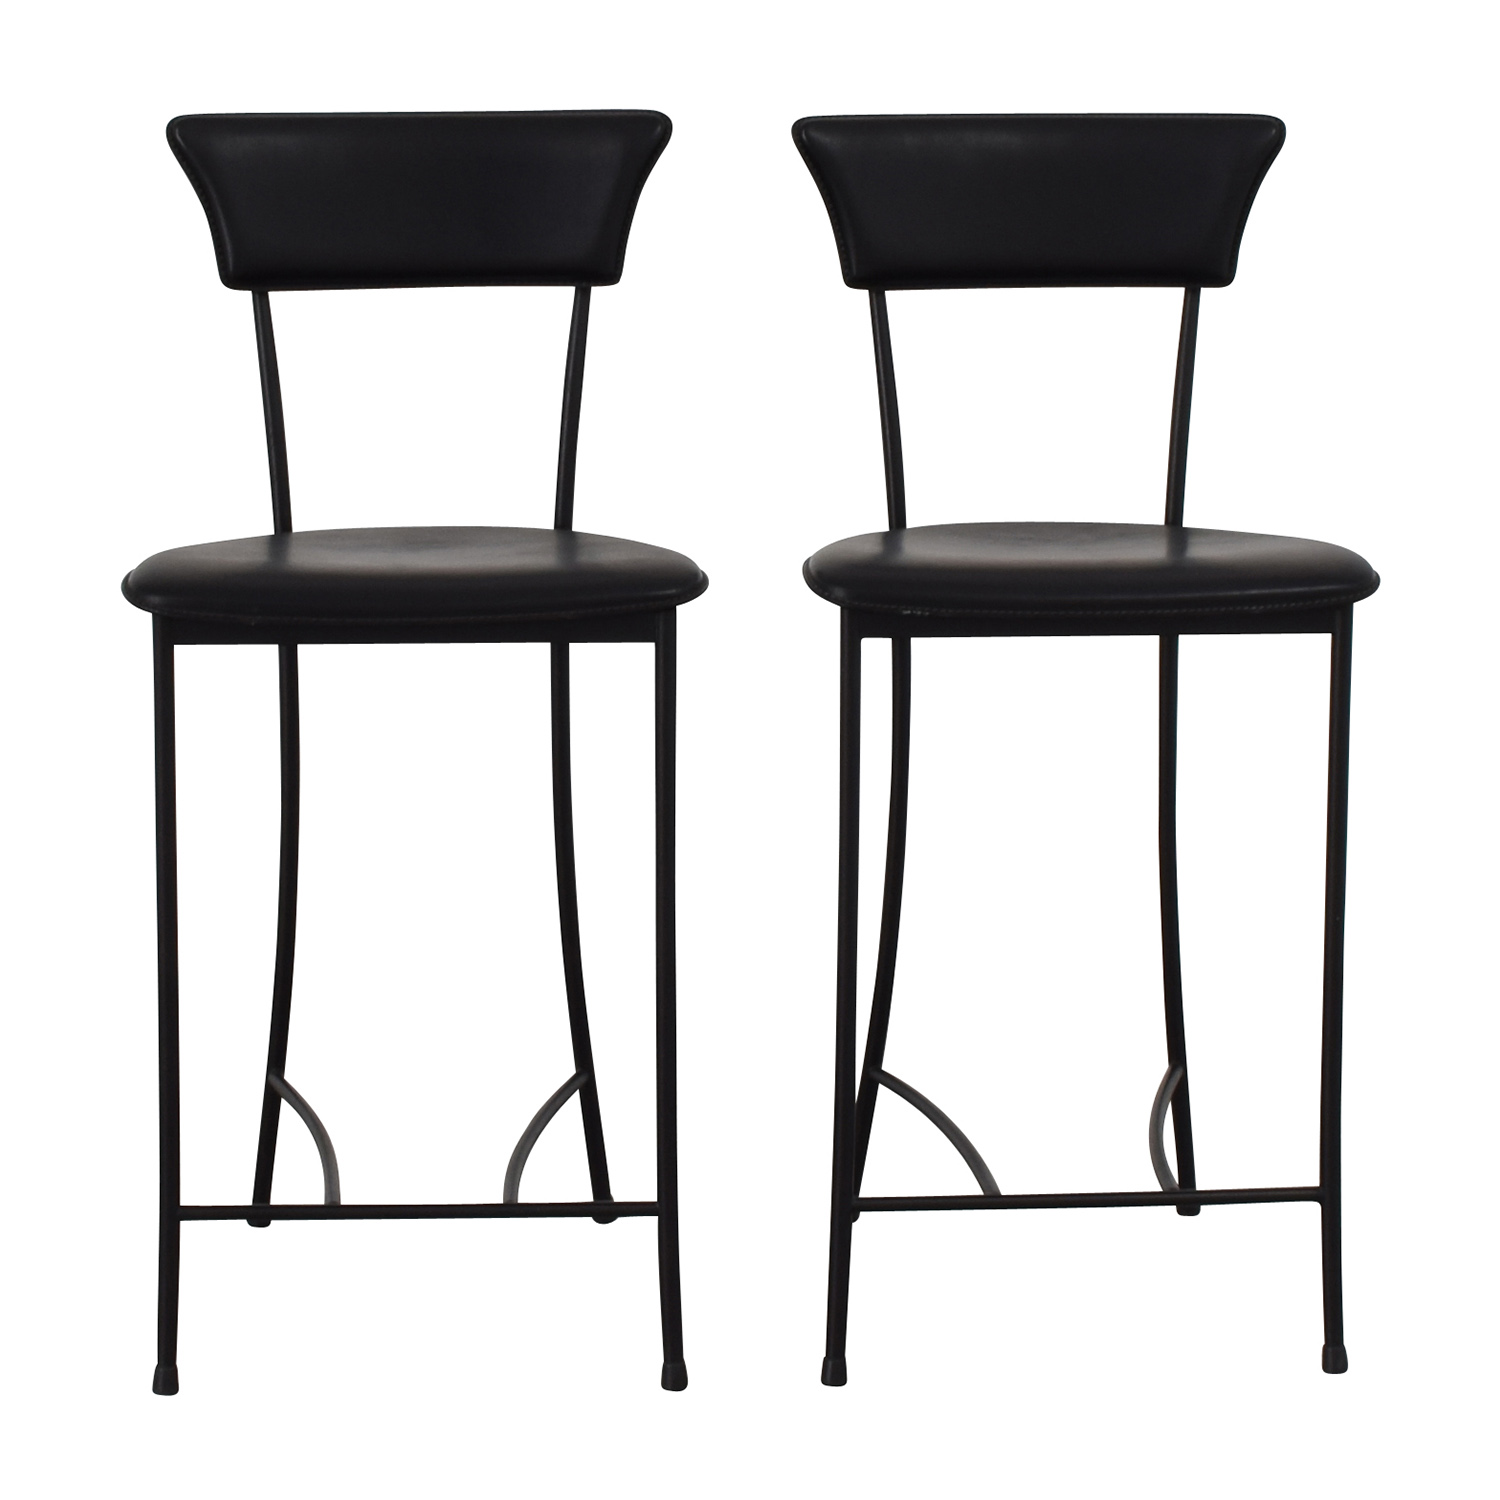 Black Leatherette Counter Height Chairs discount